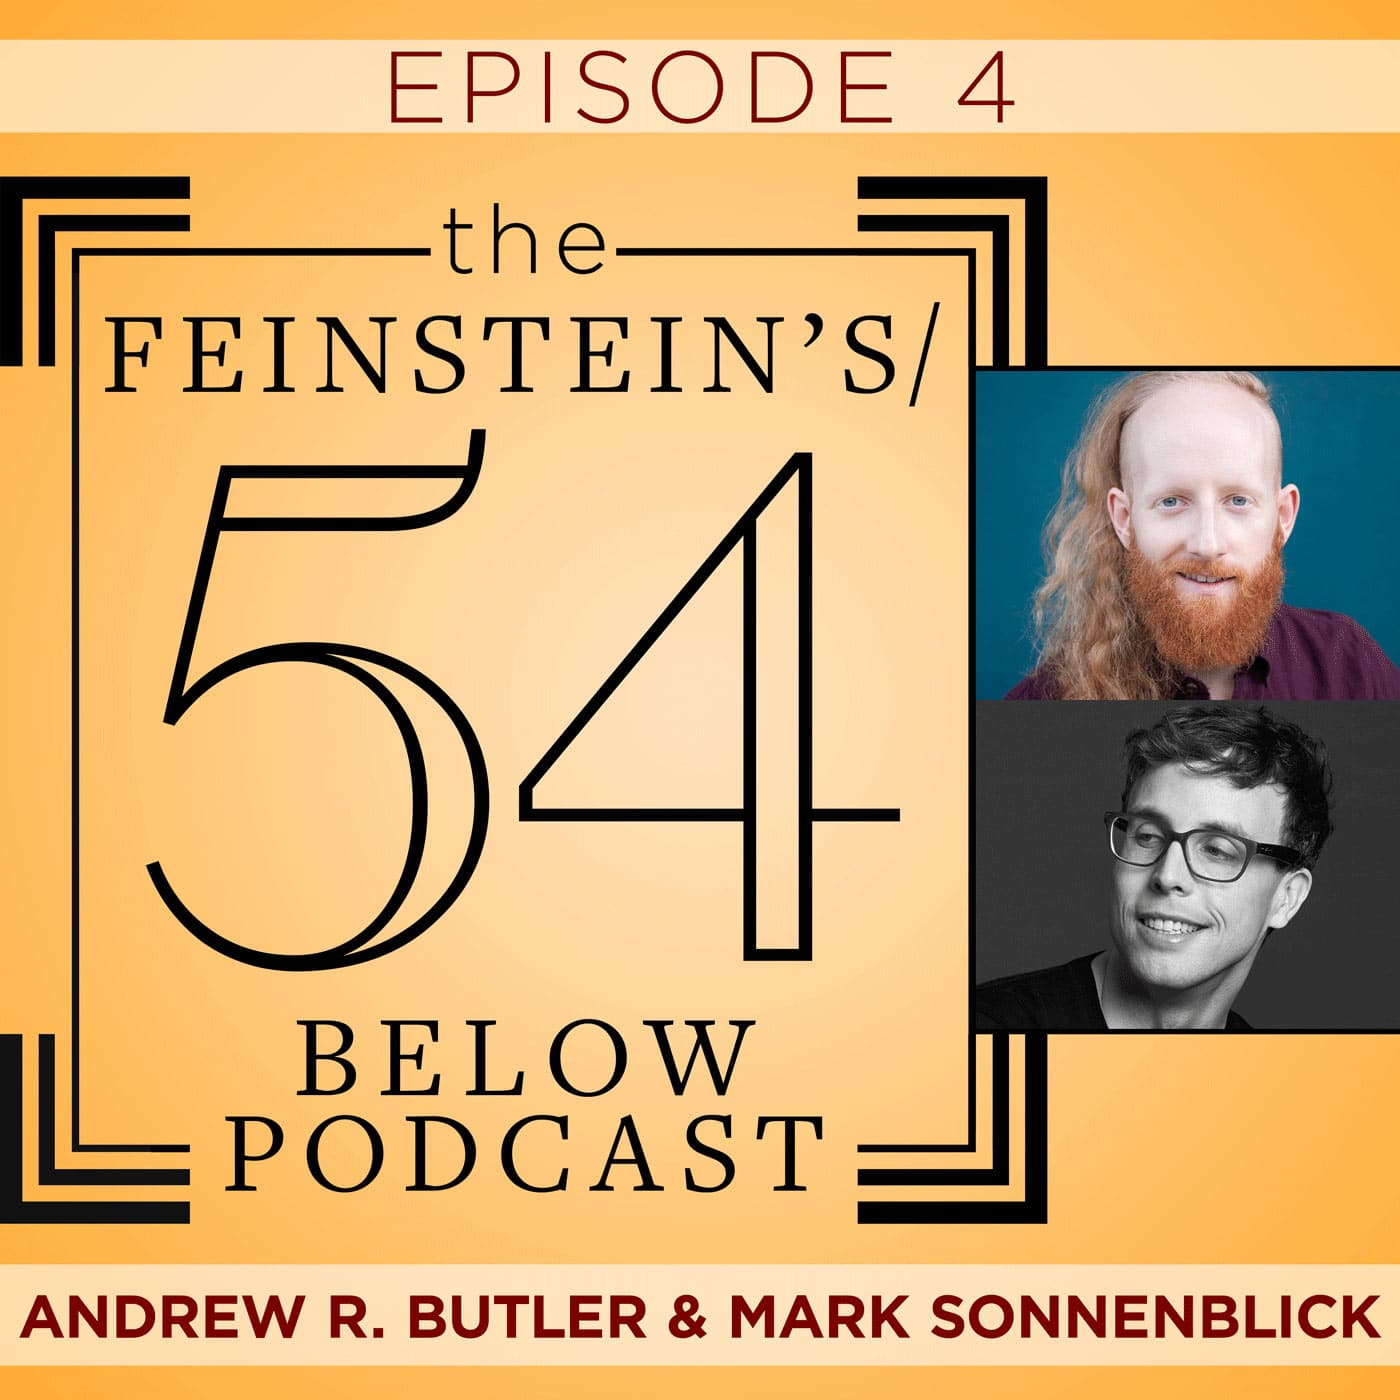 Feinstein's 54 Below Podcast Episode 4 Andrew R Butler & Mark Sonnenblick